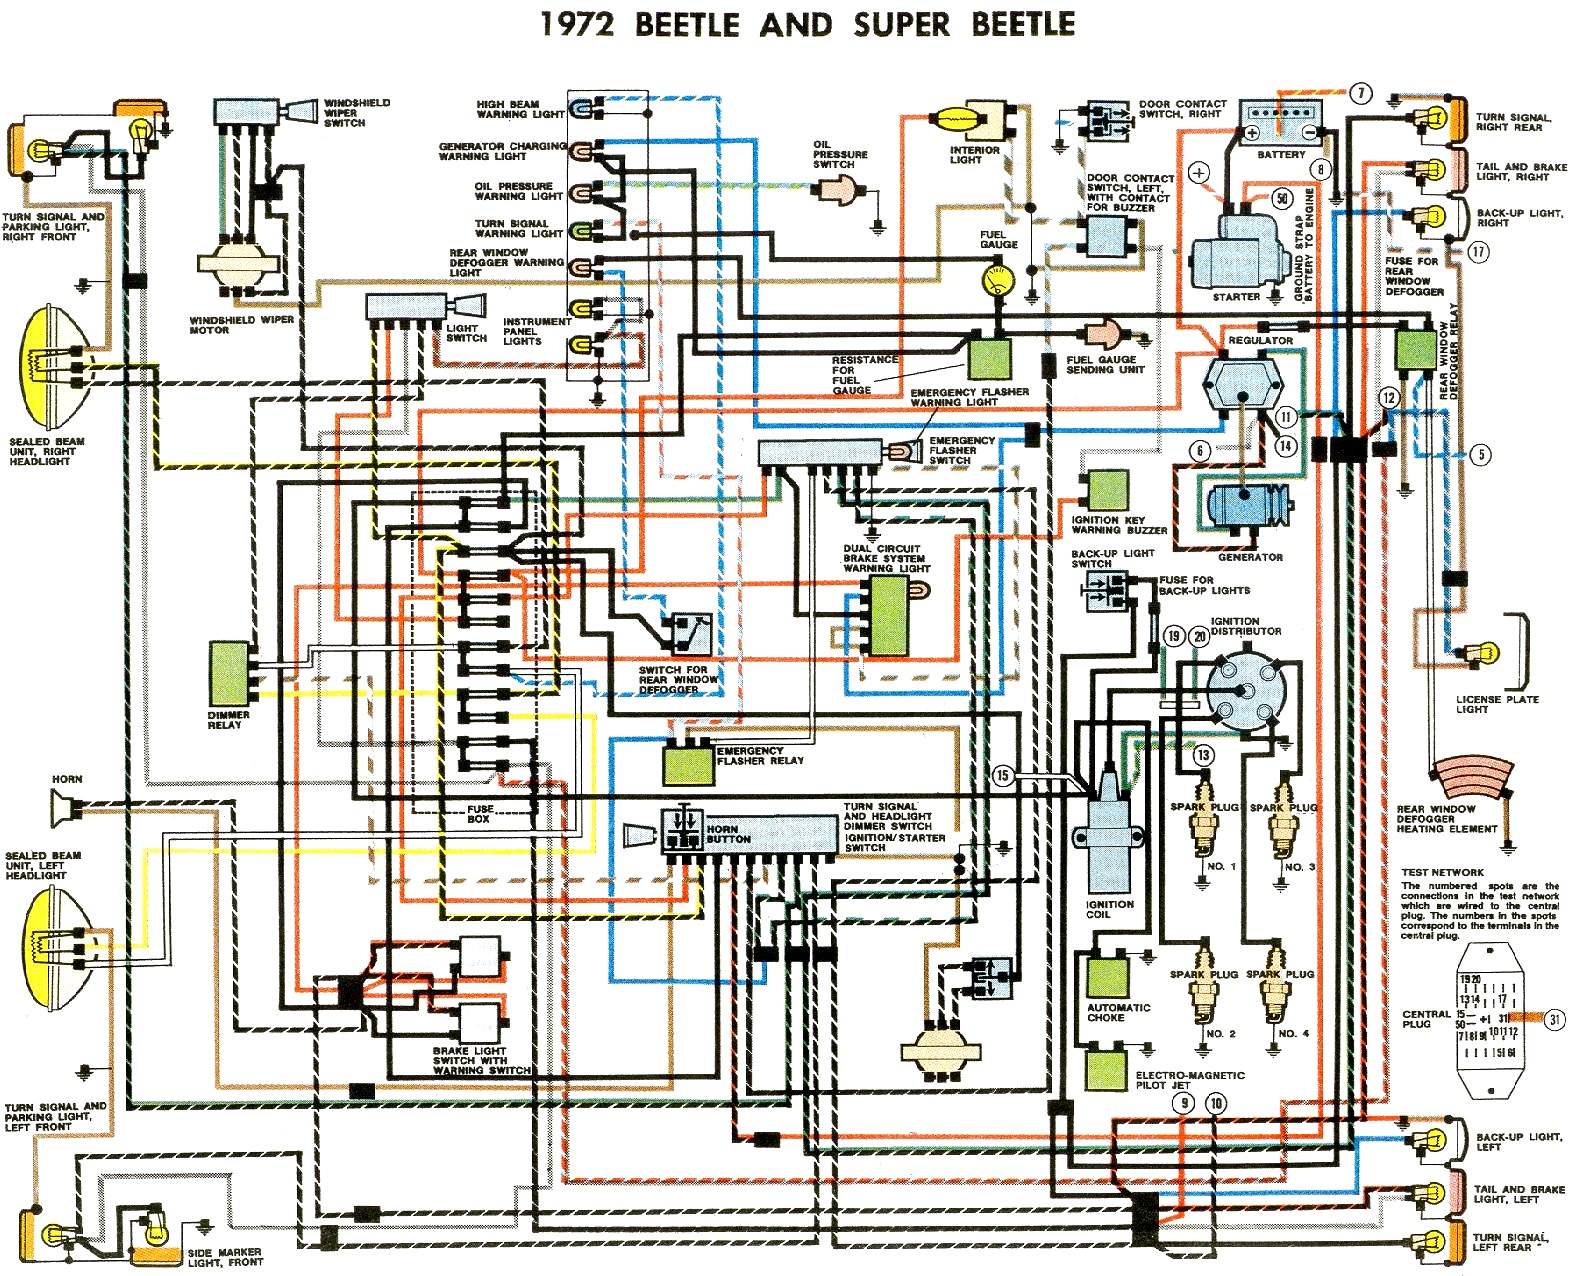 72 vw wiring diagram trusted wiring diagrams u2022 rh sivamuni com